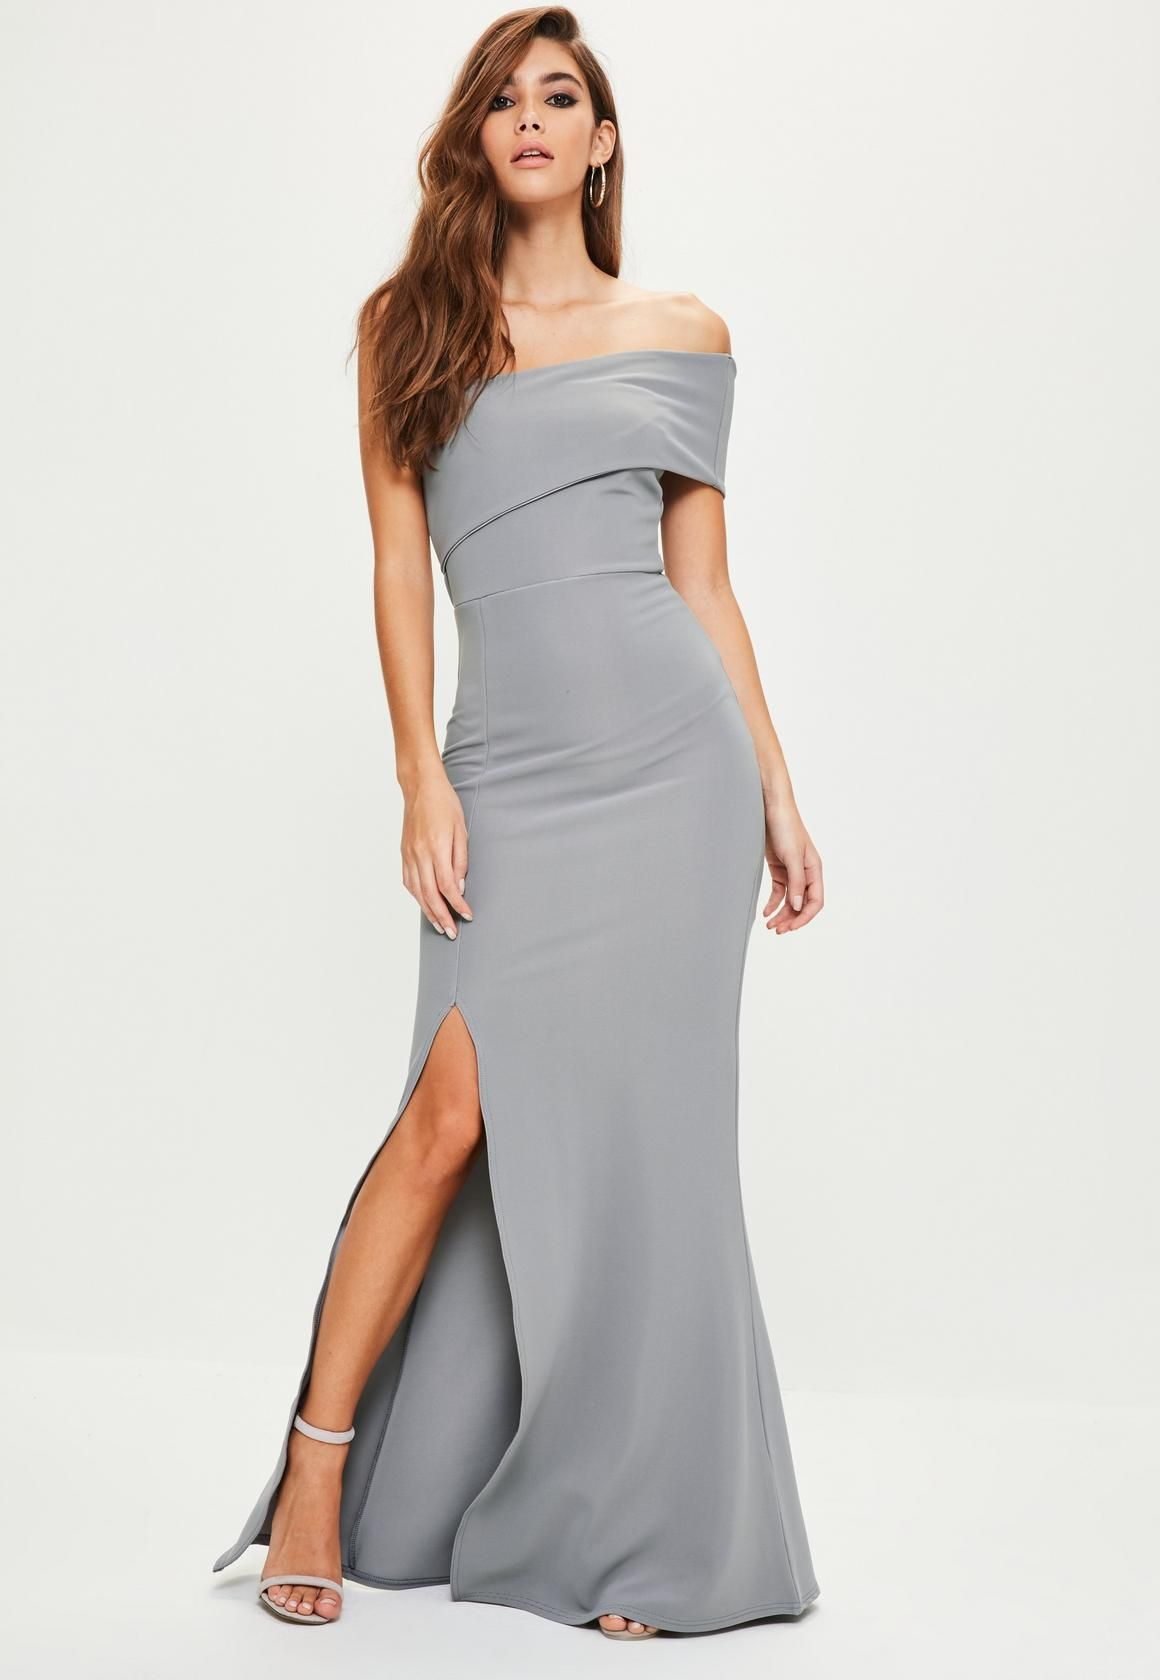 5078793d23 Missguided - Grey One Shoulder Maxi Dress | Bodacious Bridesmaids ...